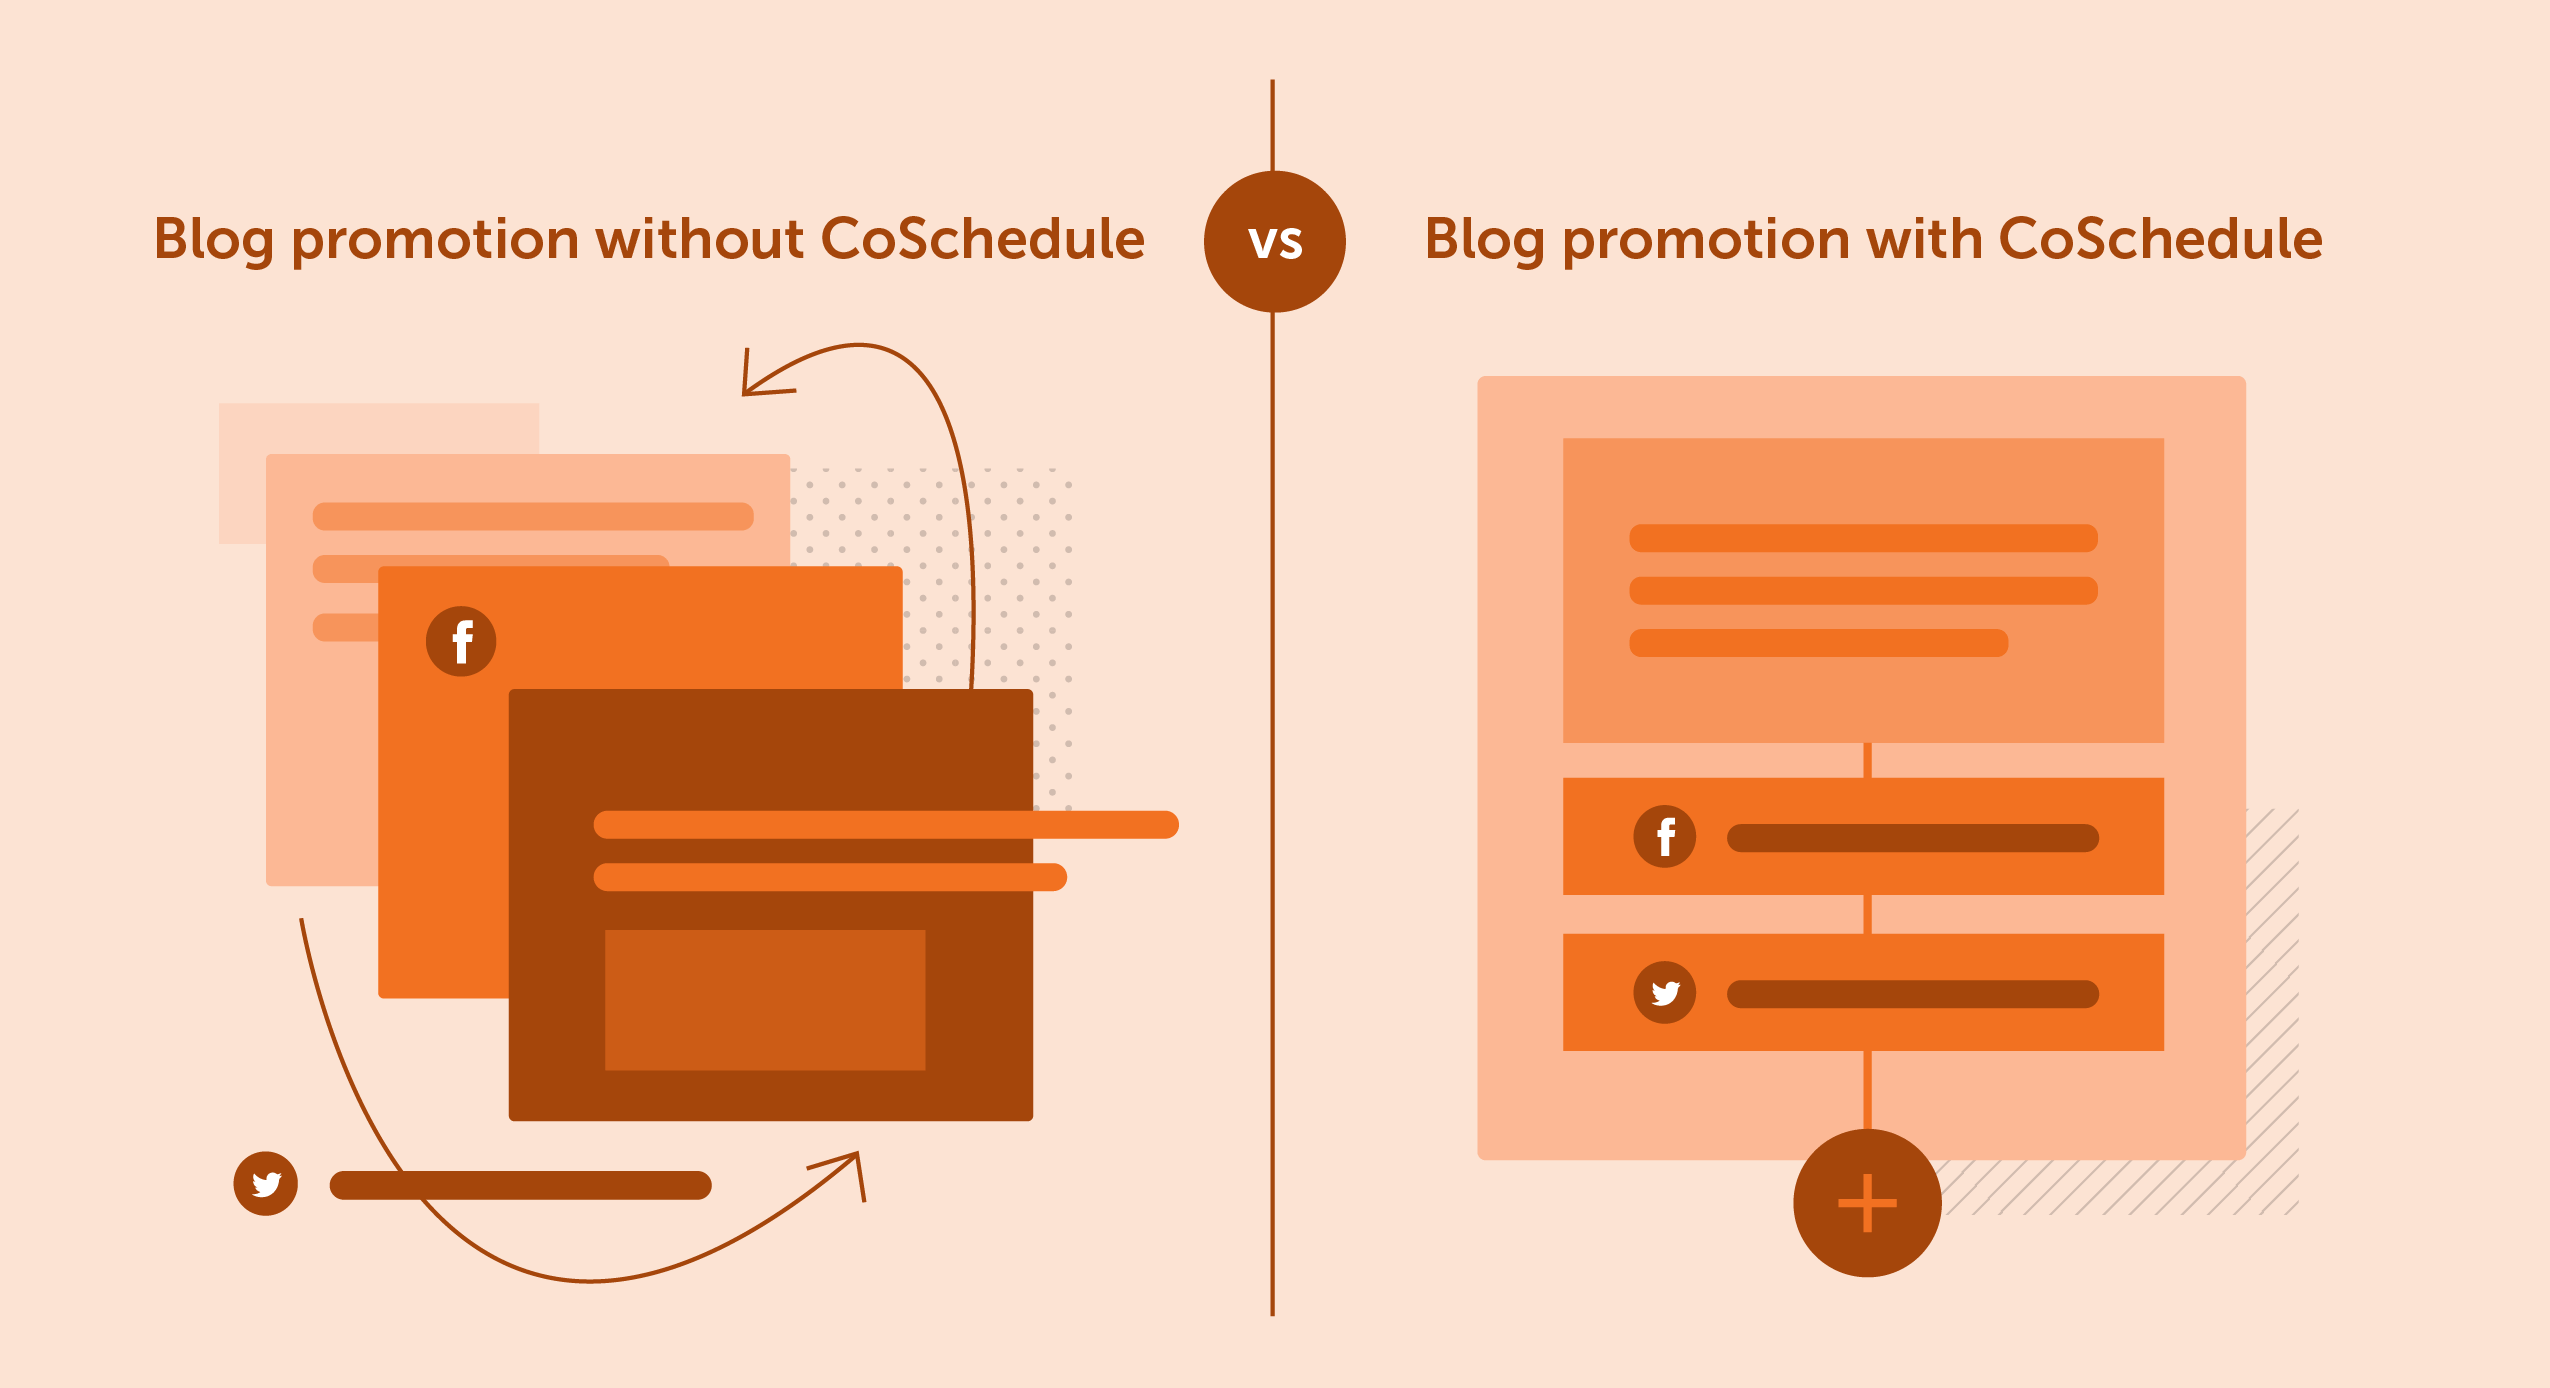 Blog promotion without CoSchedule (cluttered) vs. Blog promotion with CoSchedule (ordered)